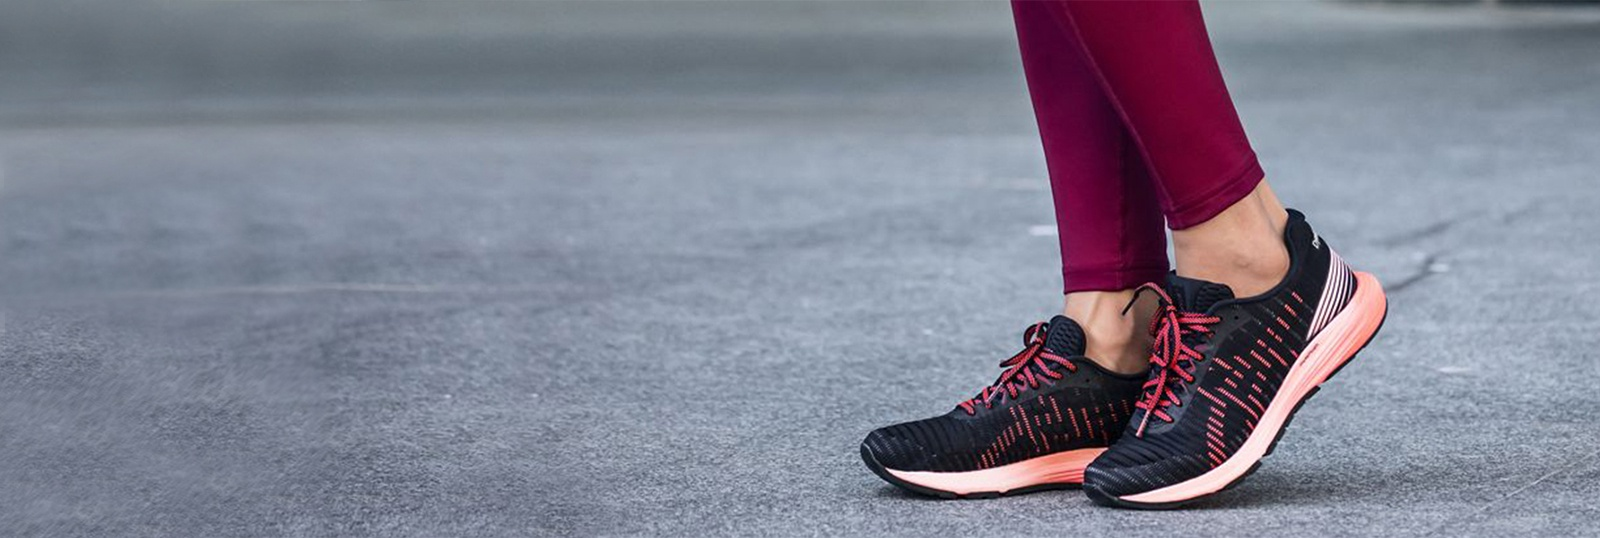 Closeup of women's legs and feet wearing black and pink running shoes and pink leggings.